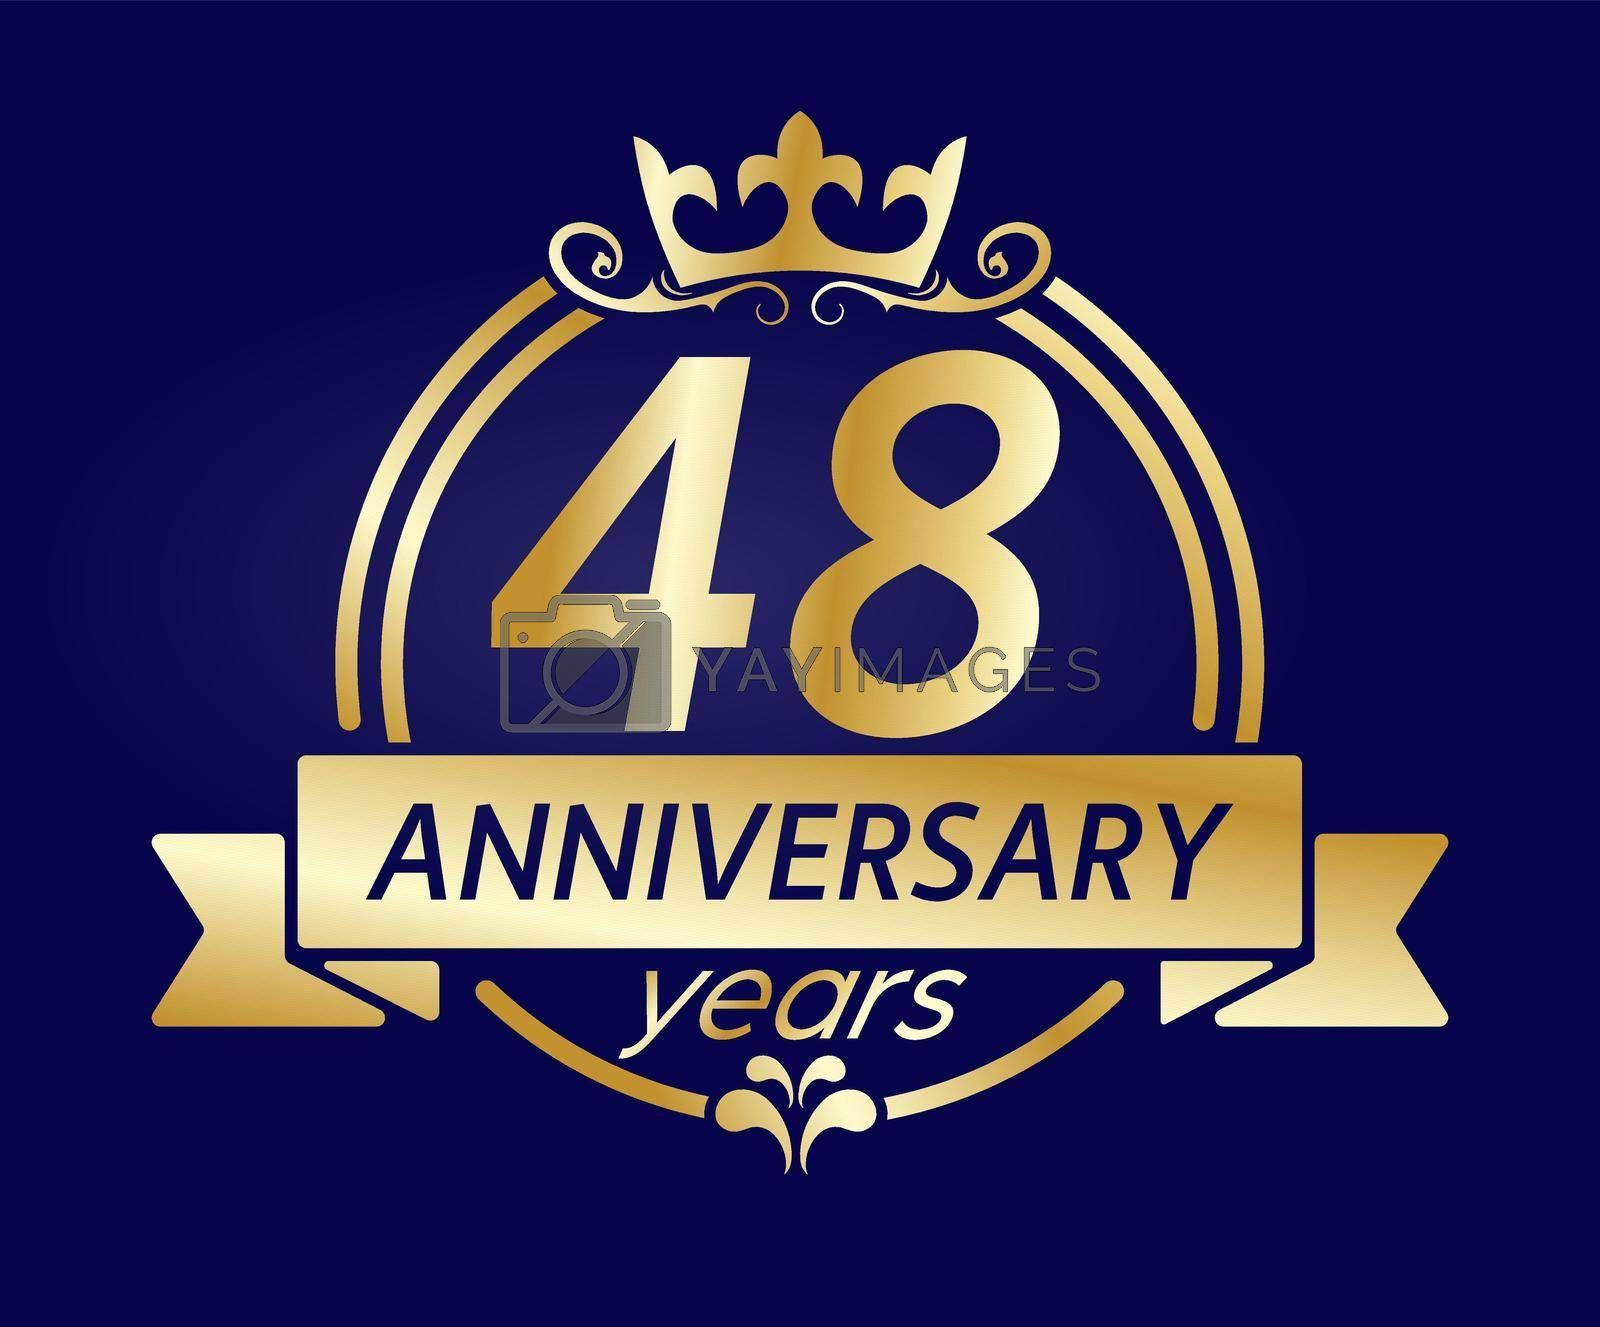 Royalty free image of 48 year anniversary. Gold round frame with crown and ribbon. Vector illustration for birthday, wedding or anniversary greetings, for creative design by Grommik